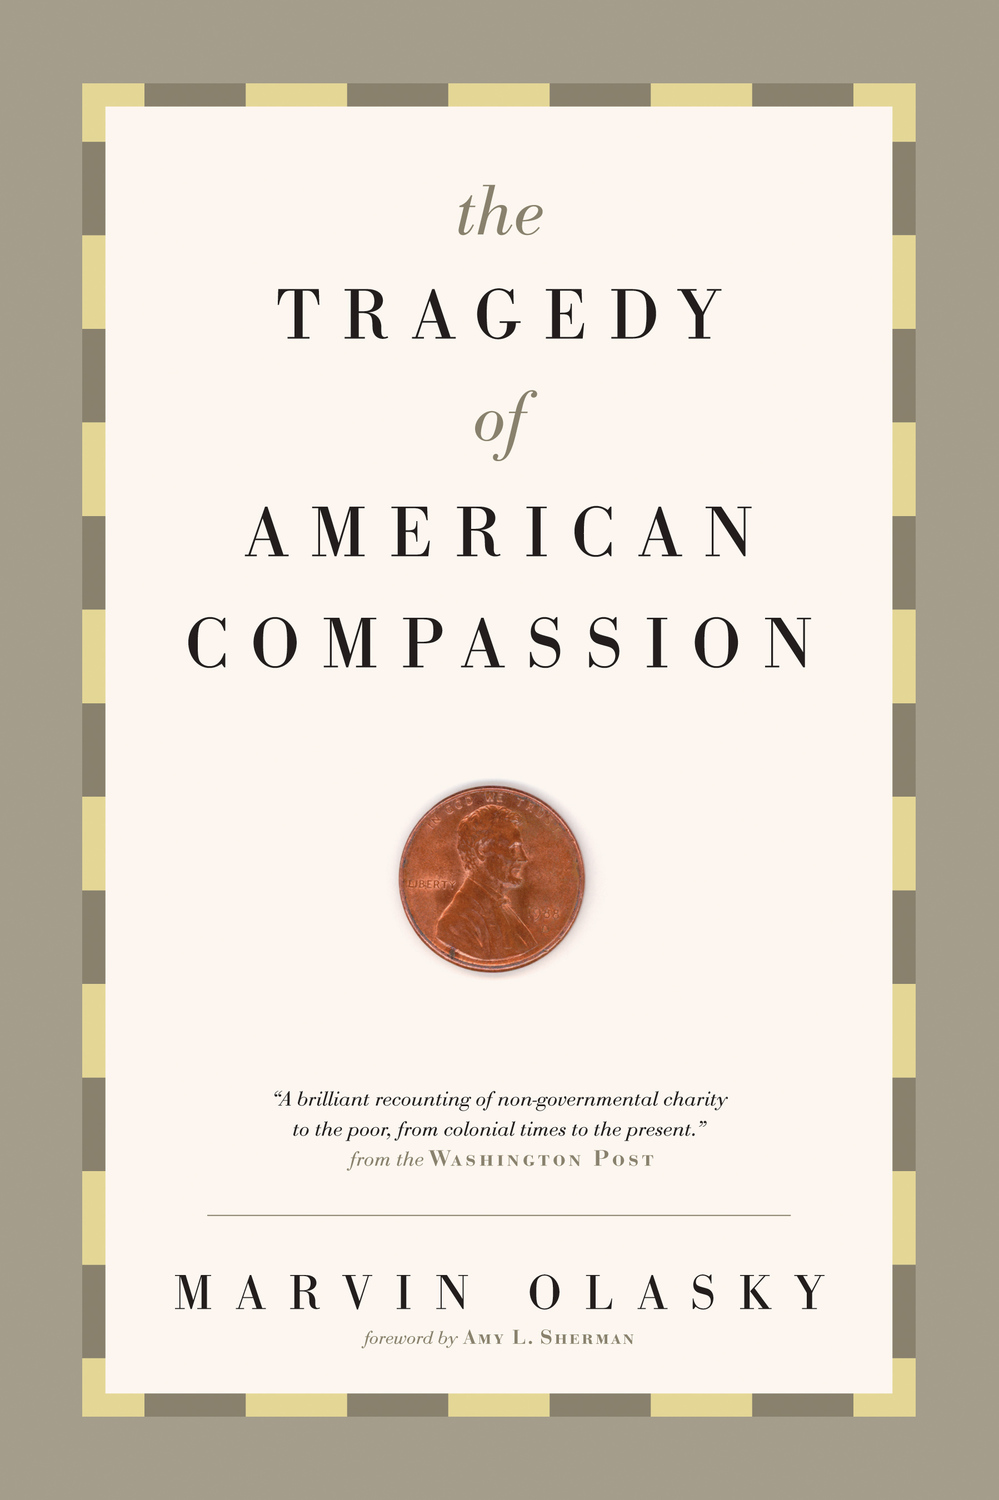 The Tragedy of American Compassion